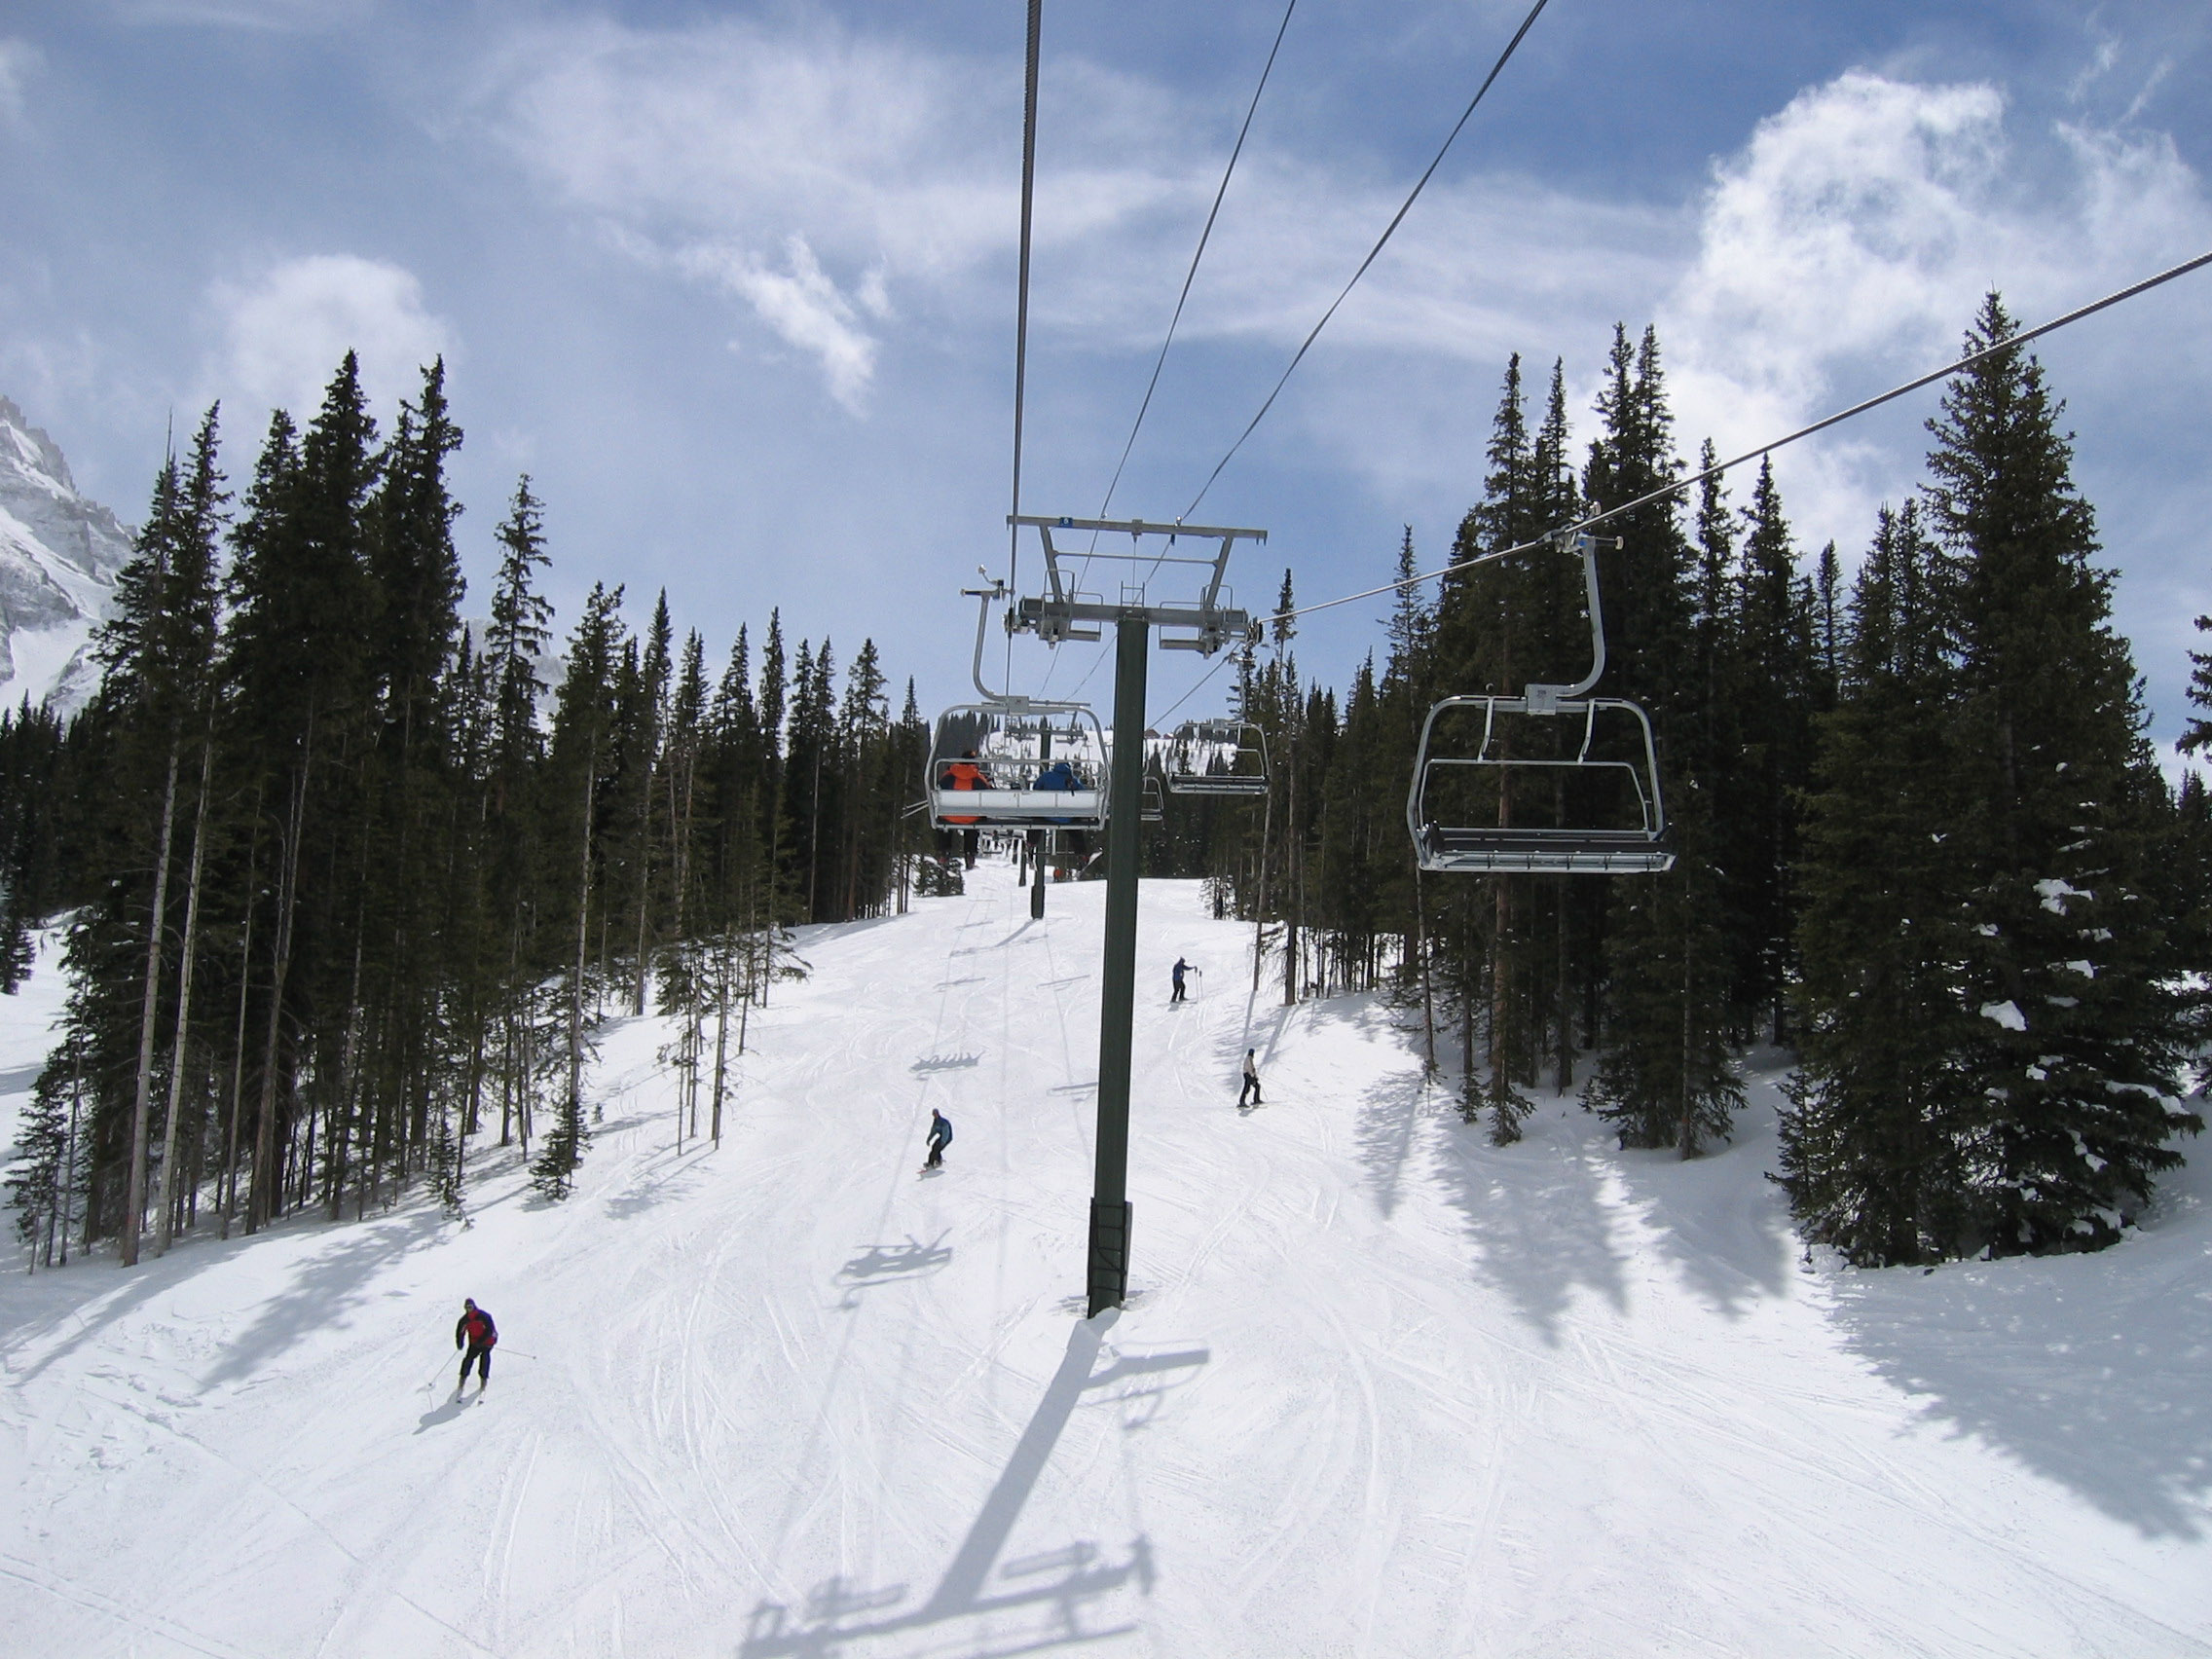 Chair Lift For Three Colony Homes Gets The OK | KPCW